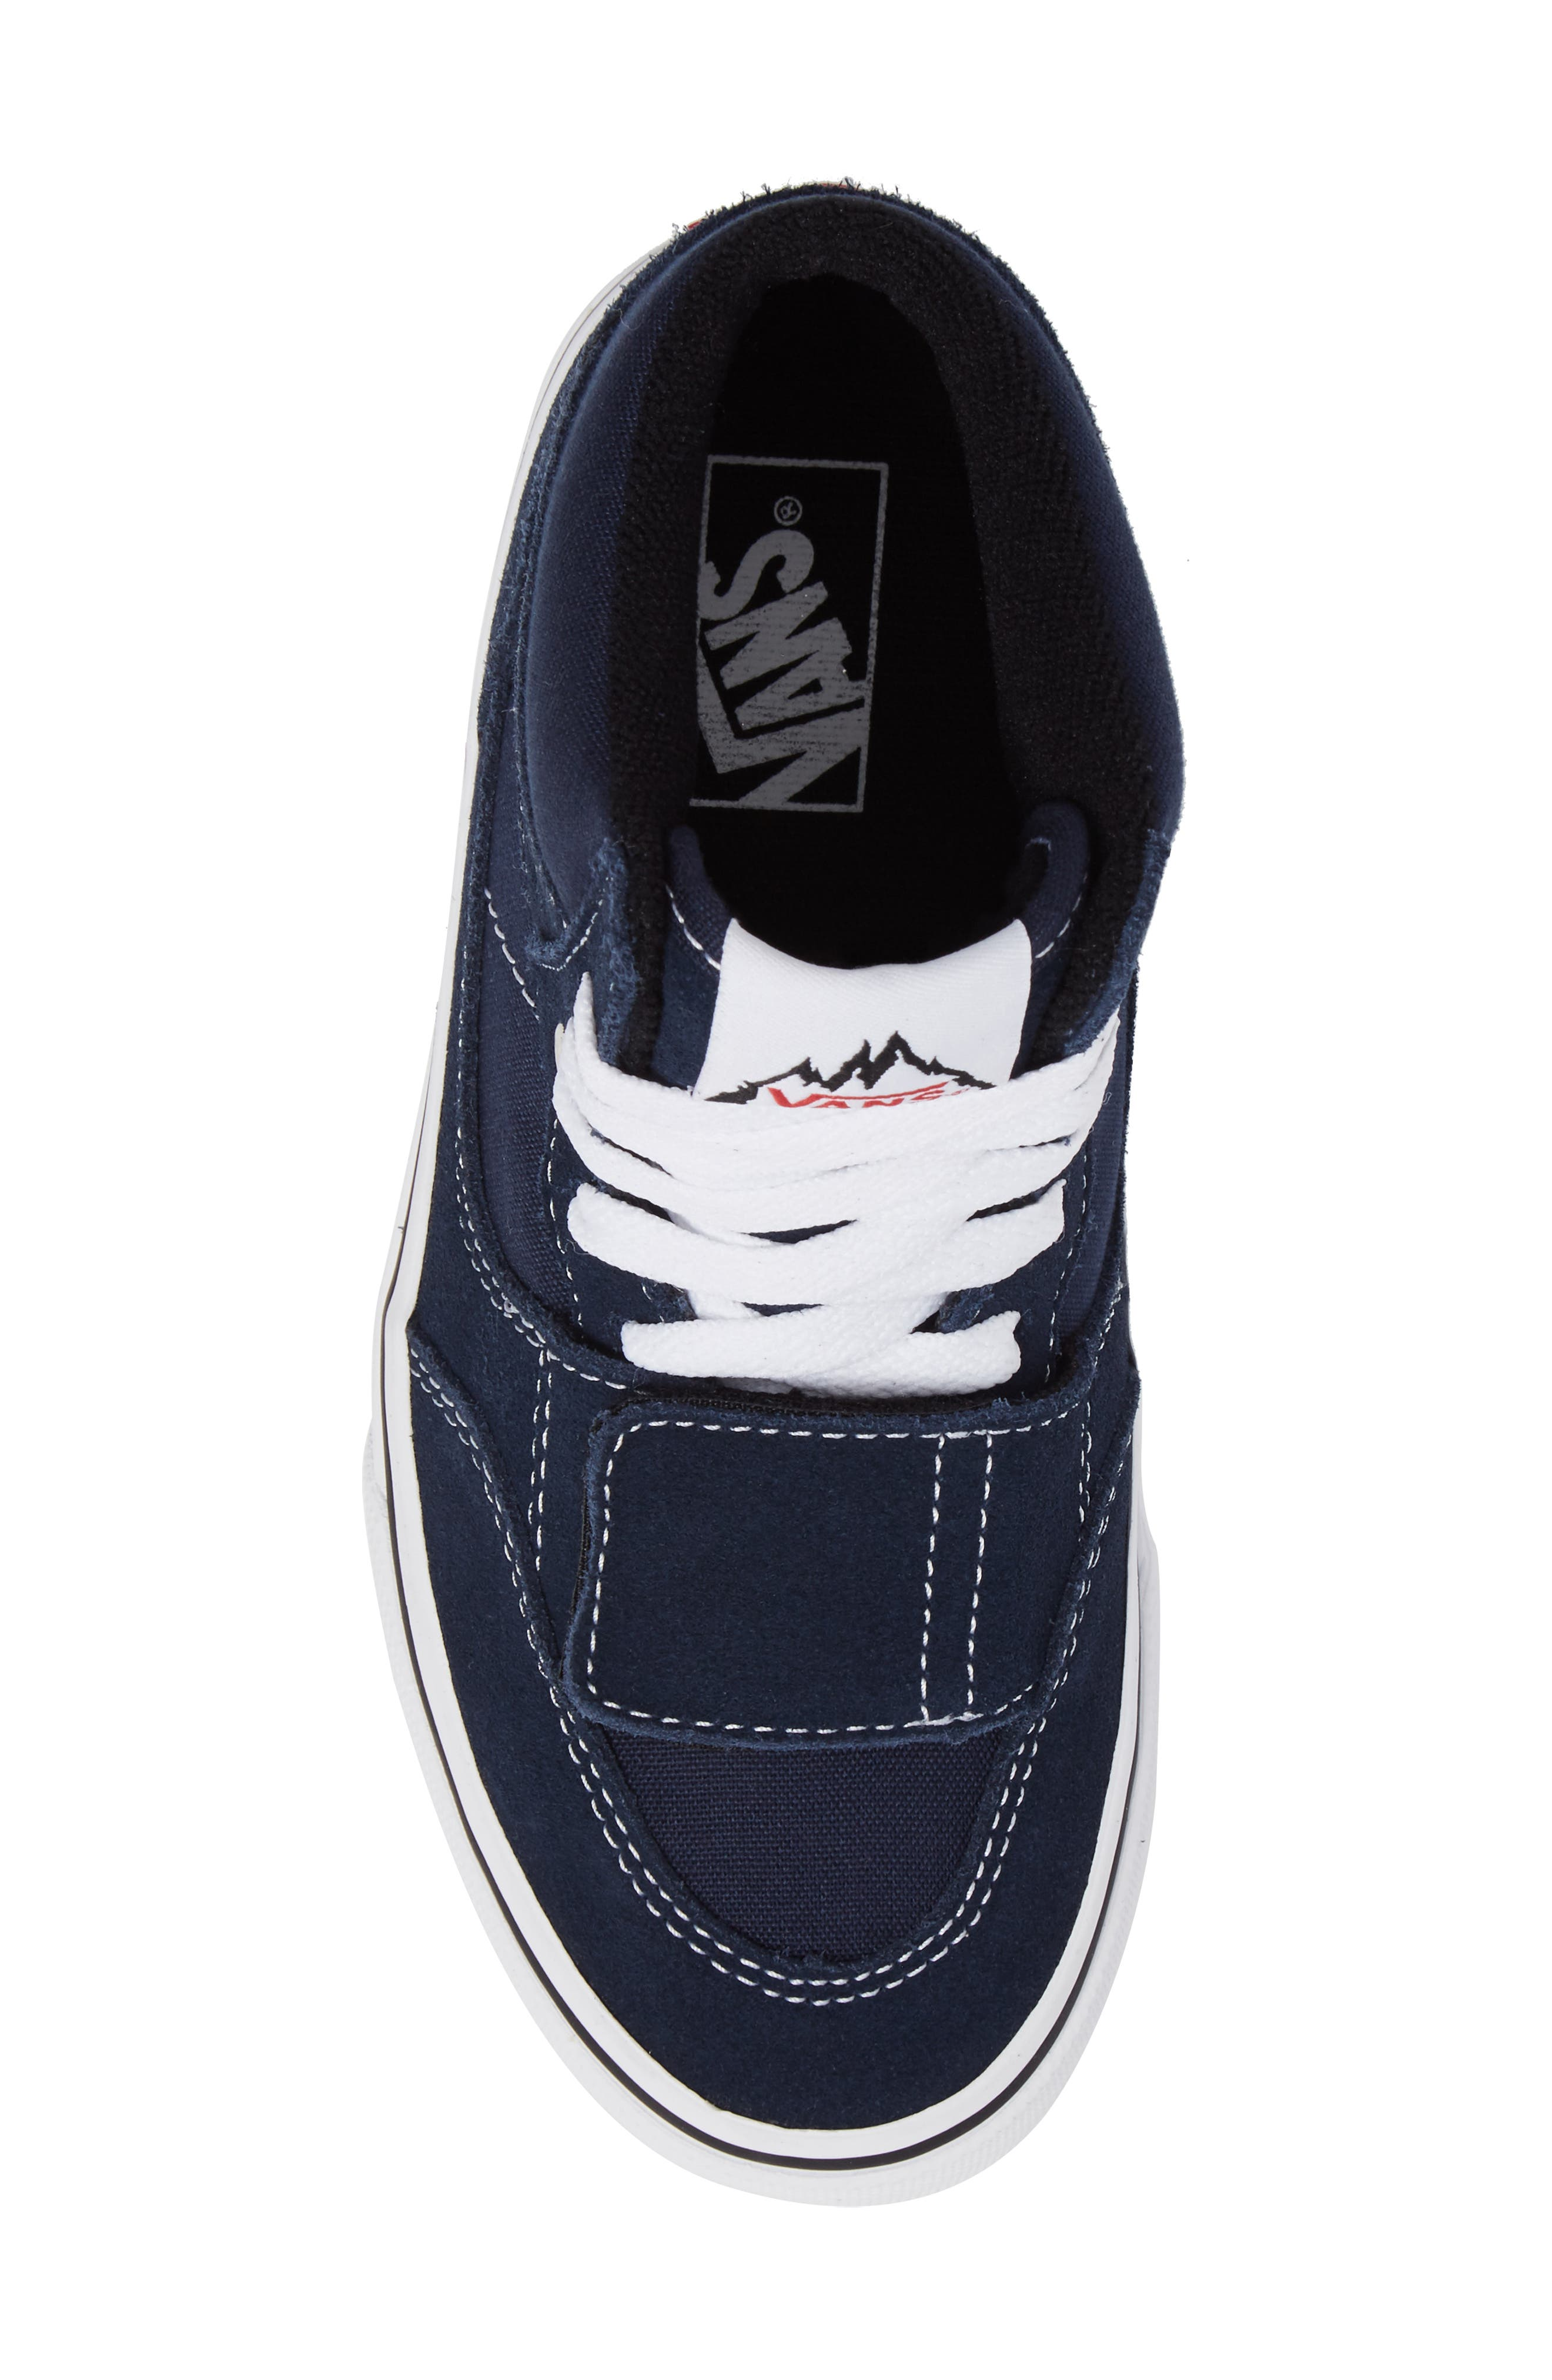 Mountain Edition Mid Top Sneaker,                             Alternate thumbnail 5, color,                             Dress Blue Canvas/ Suede